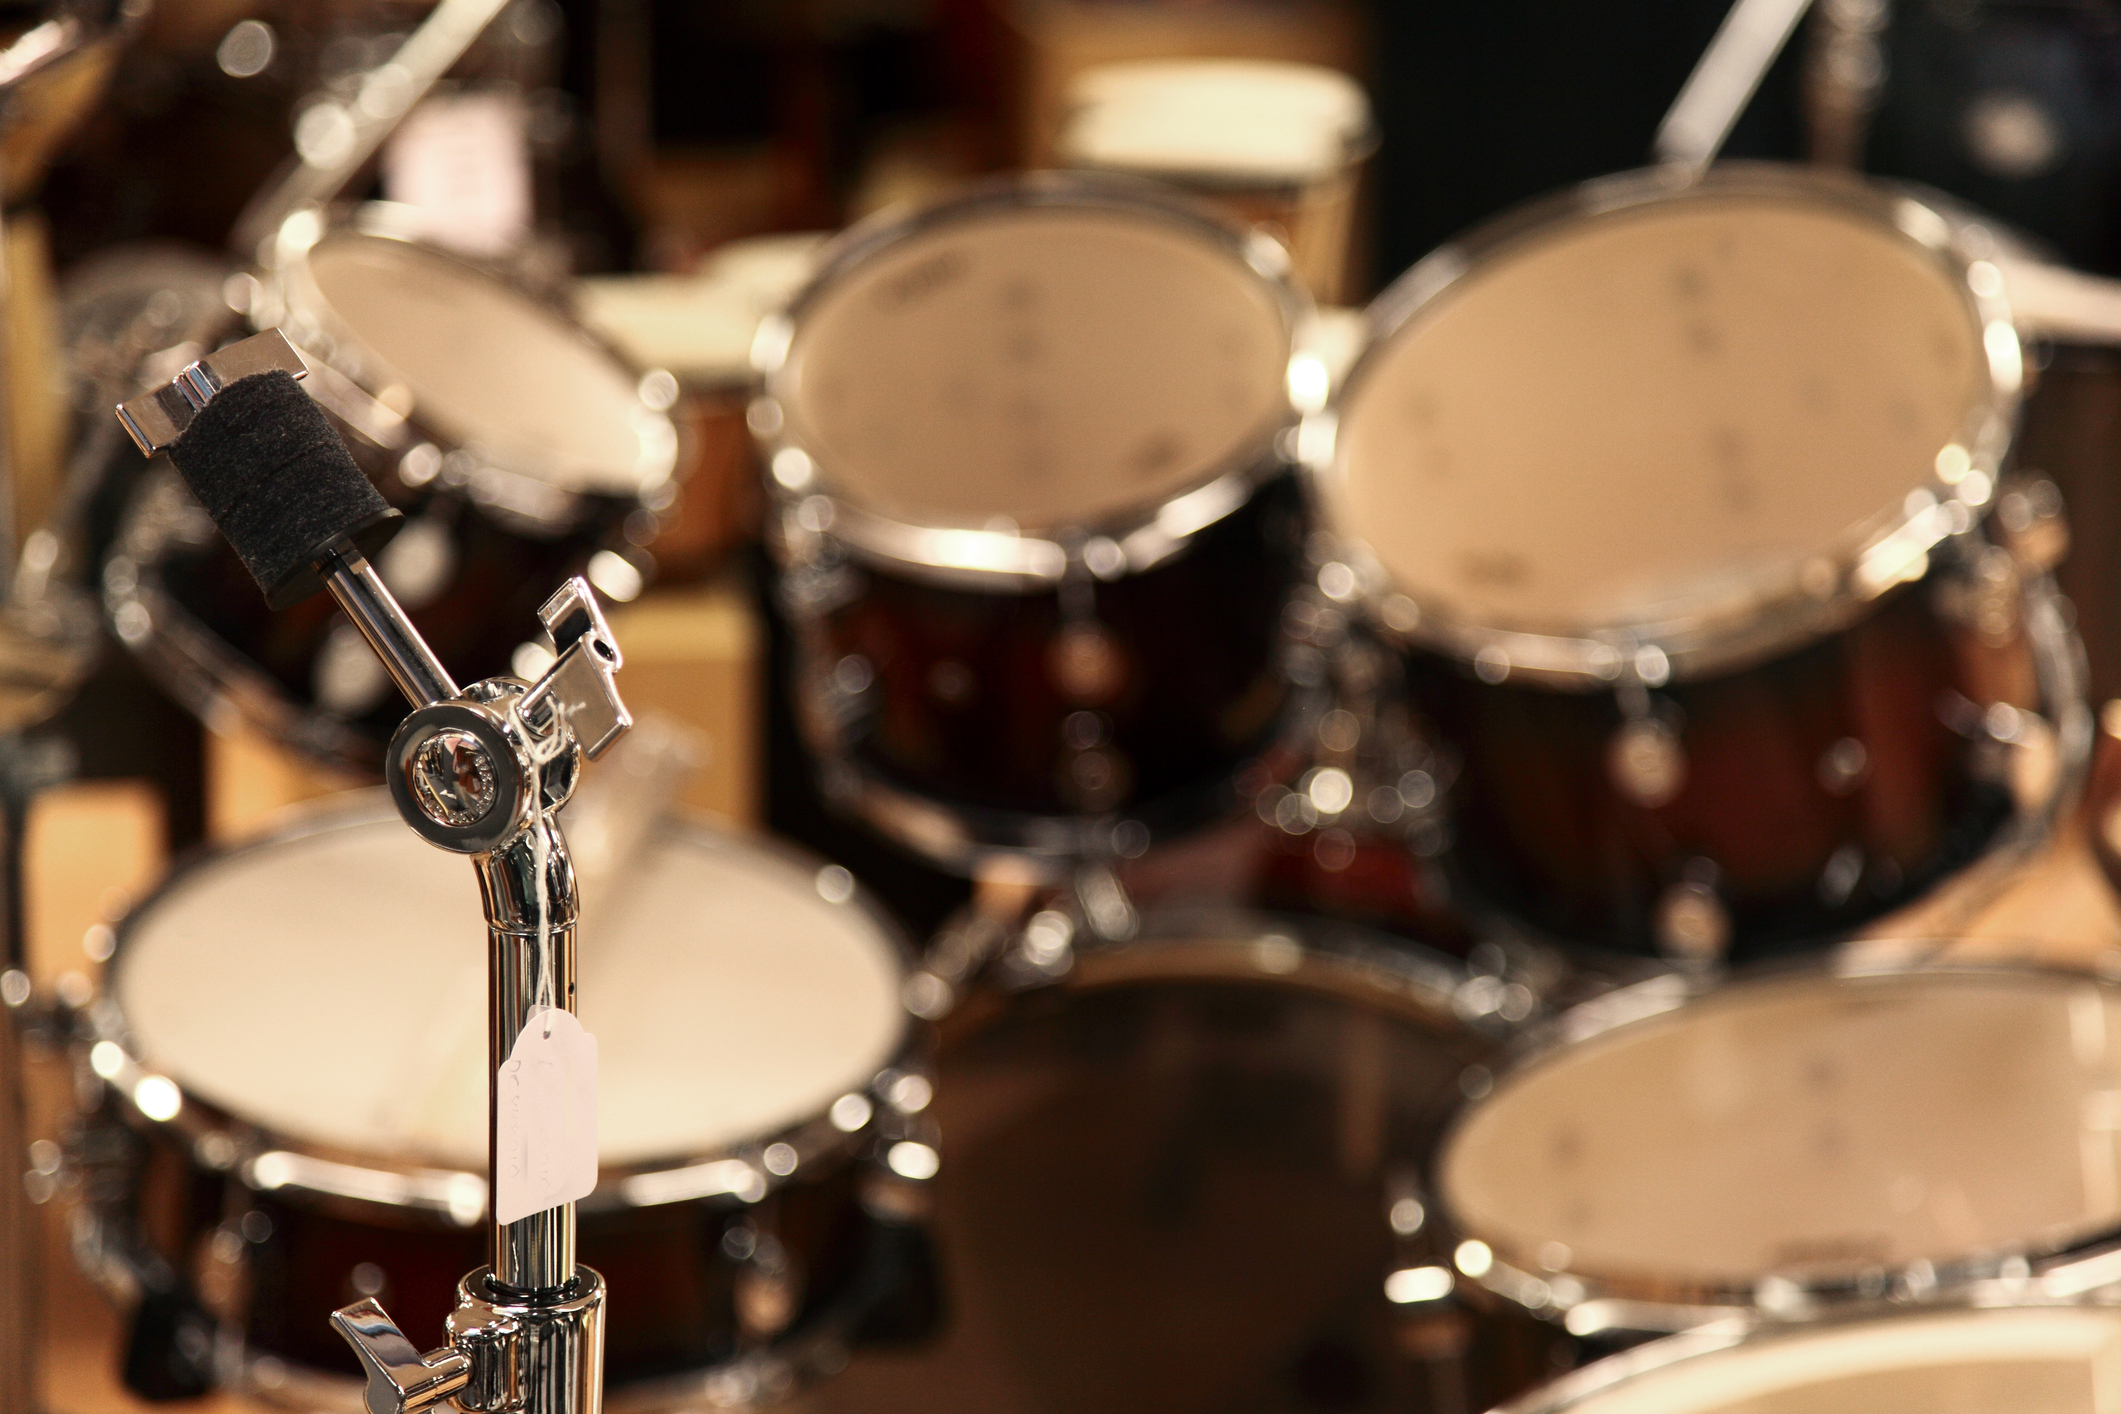 Drum Lessons in Agoura Hills